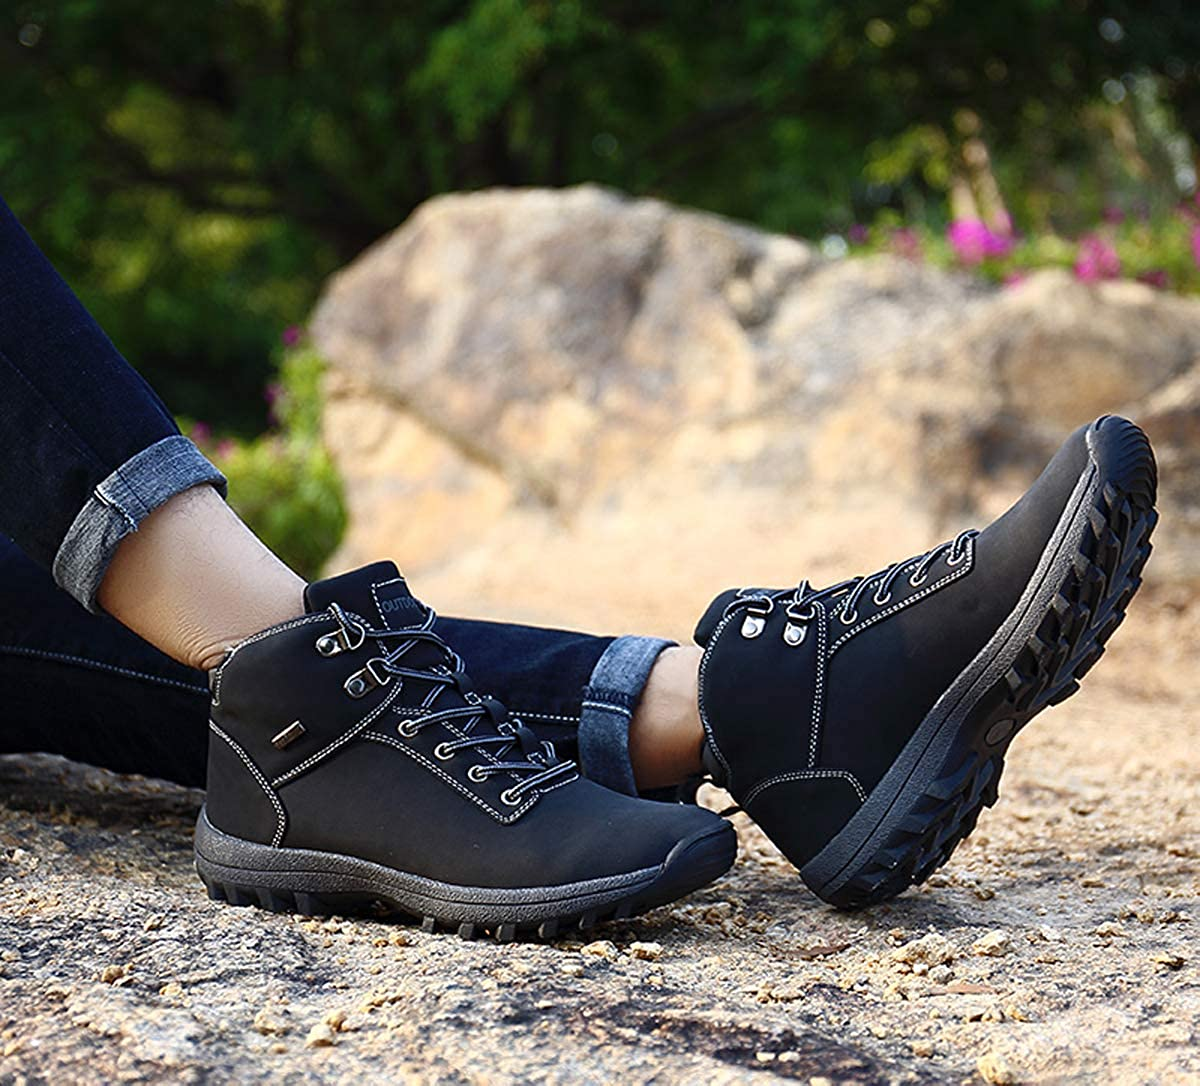 Mens Trekking Hiking Shoes Mid Ankle Boots Non-Slip Rubber Sole Waterproof Outdoor Shoes